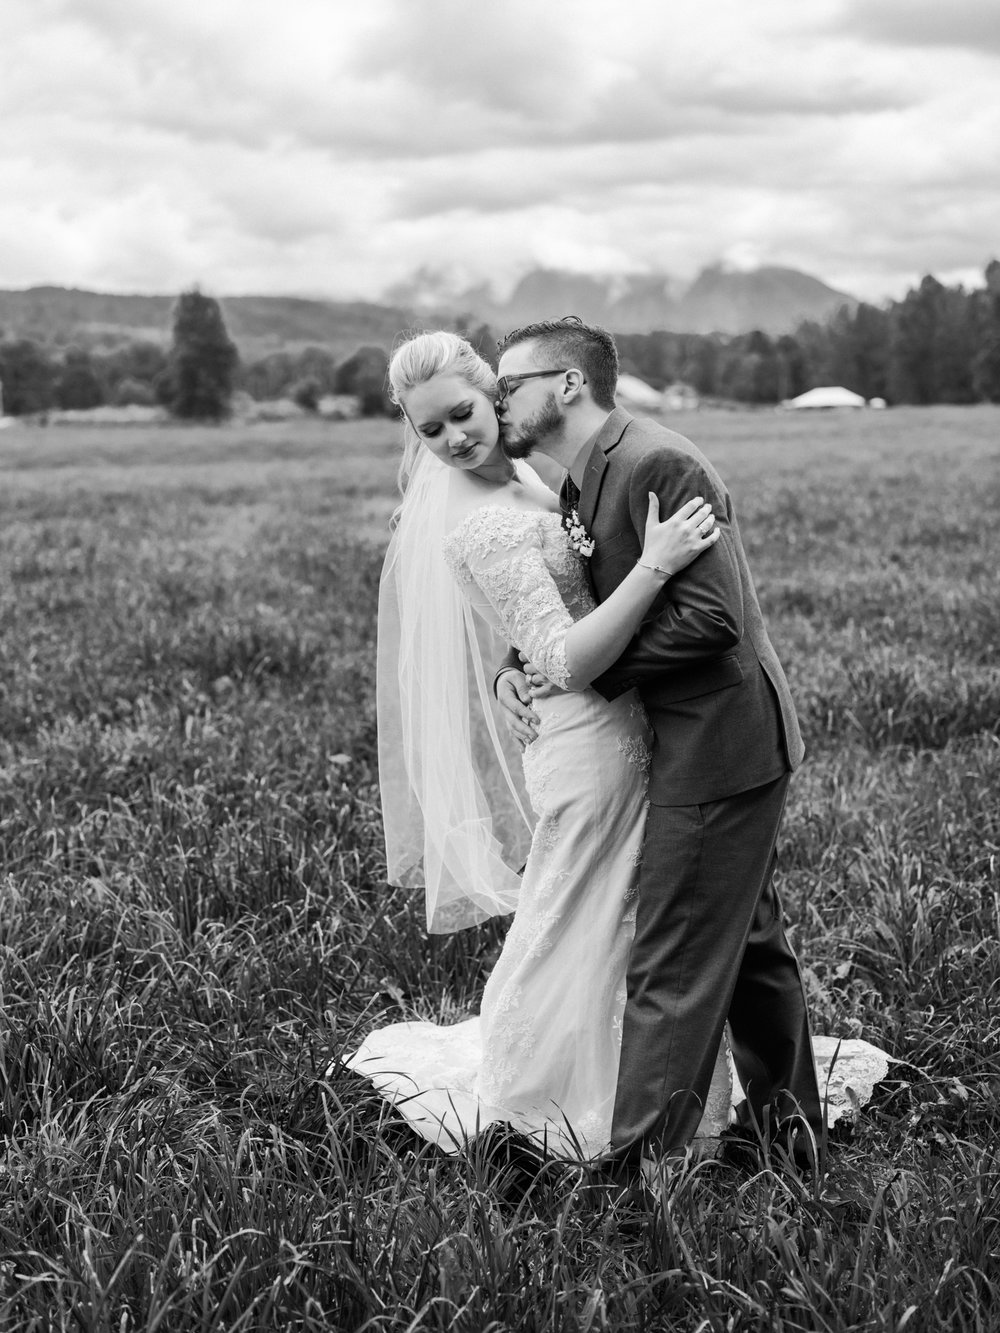 Stolen Glimpses Seattle Wedding Photographer Fall City Wedding59.jpg